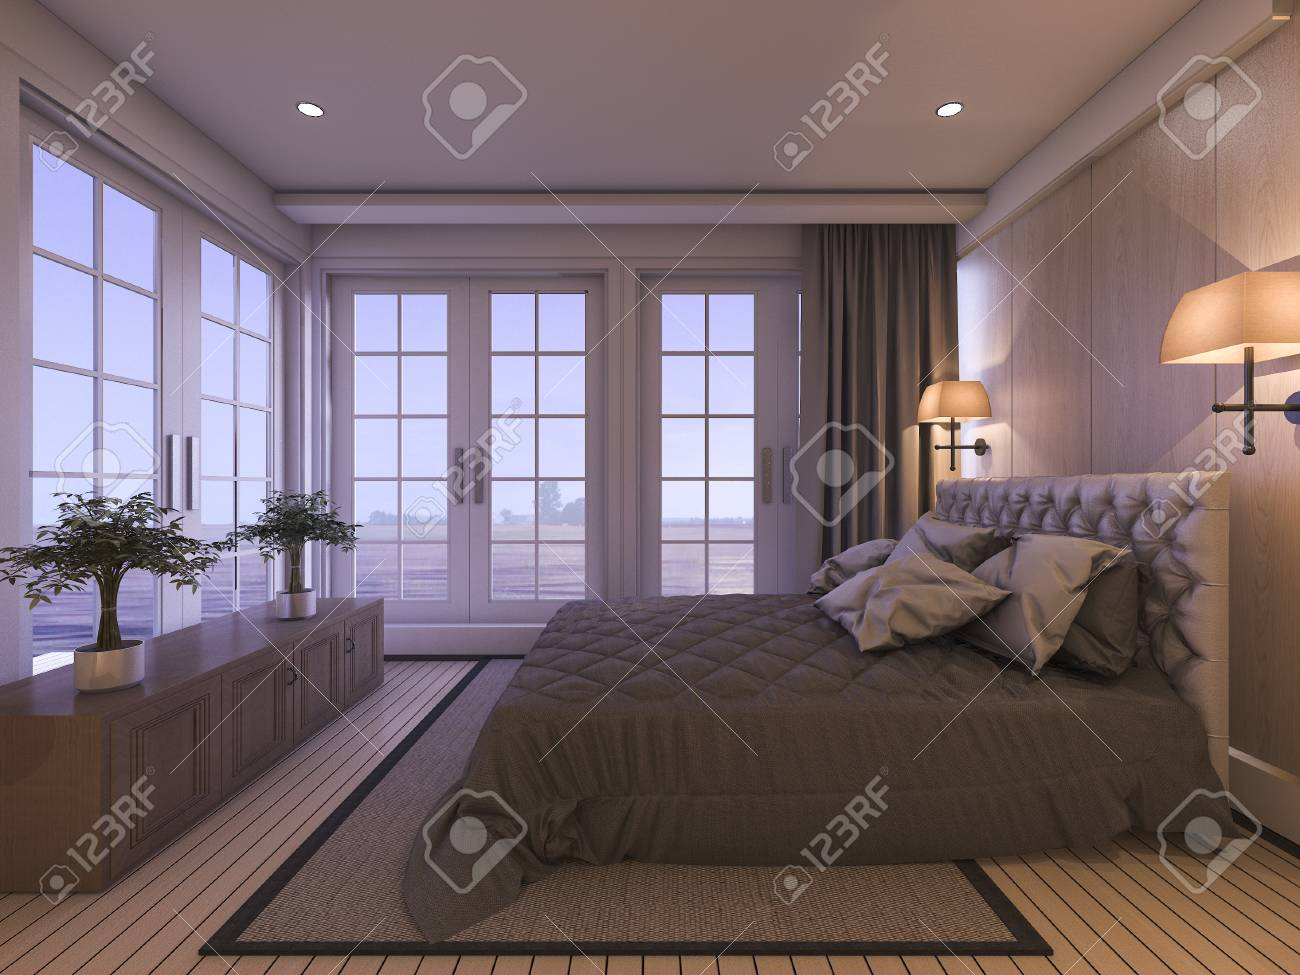 Schlafzimmer Pflanze Stock Photo